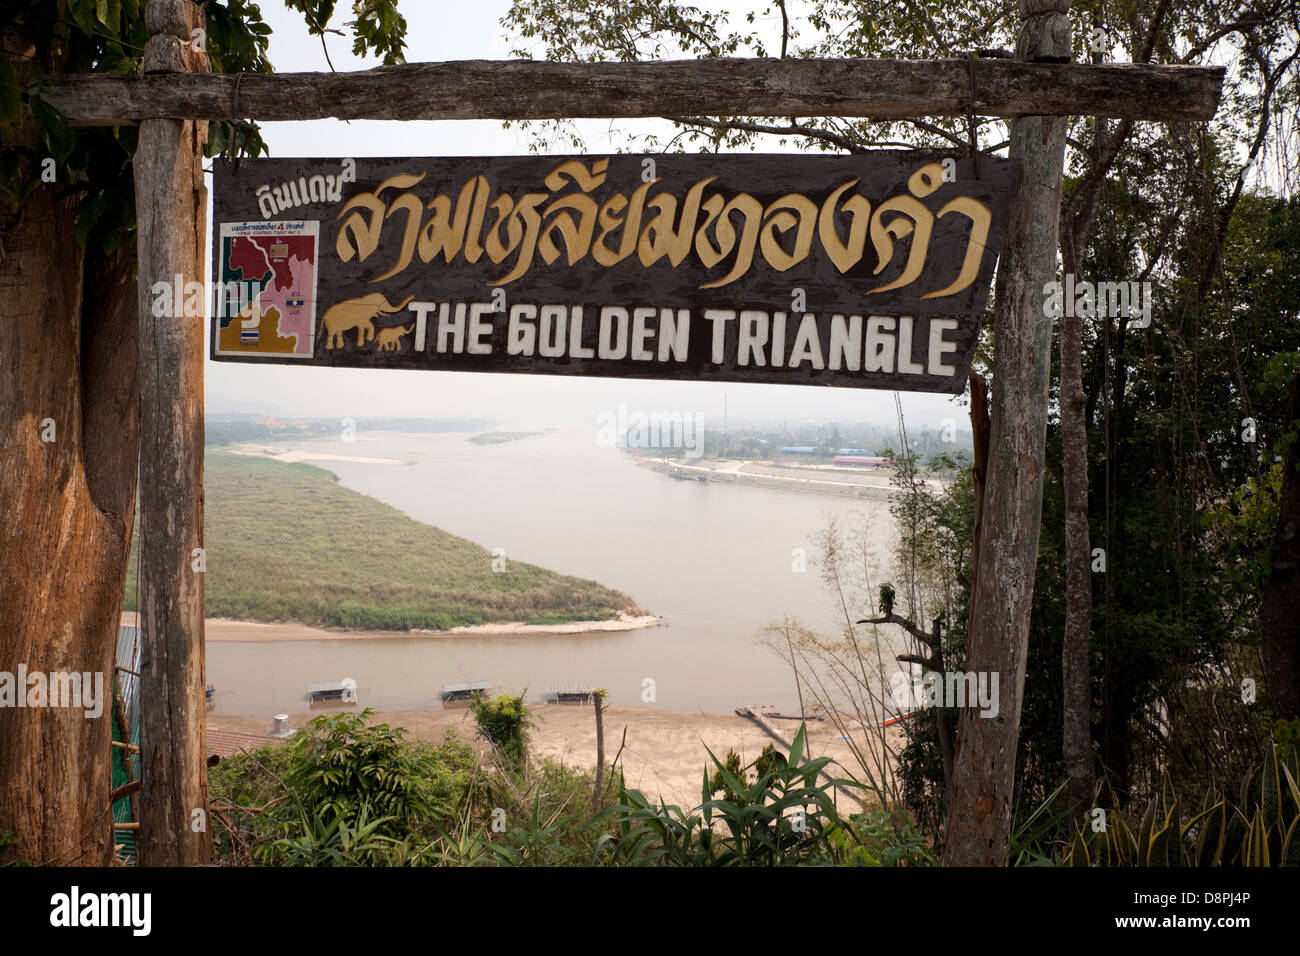 The Golden Triangle where Thailand, Burma/Myanmar and Laos meet